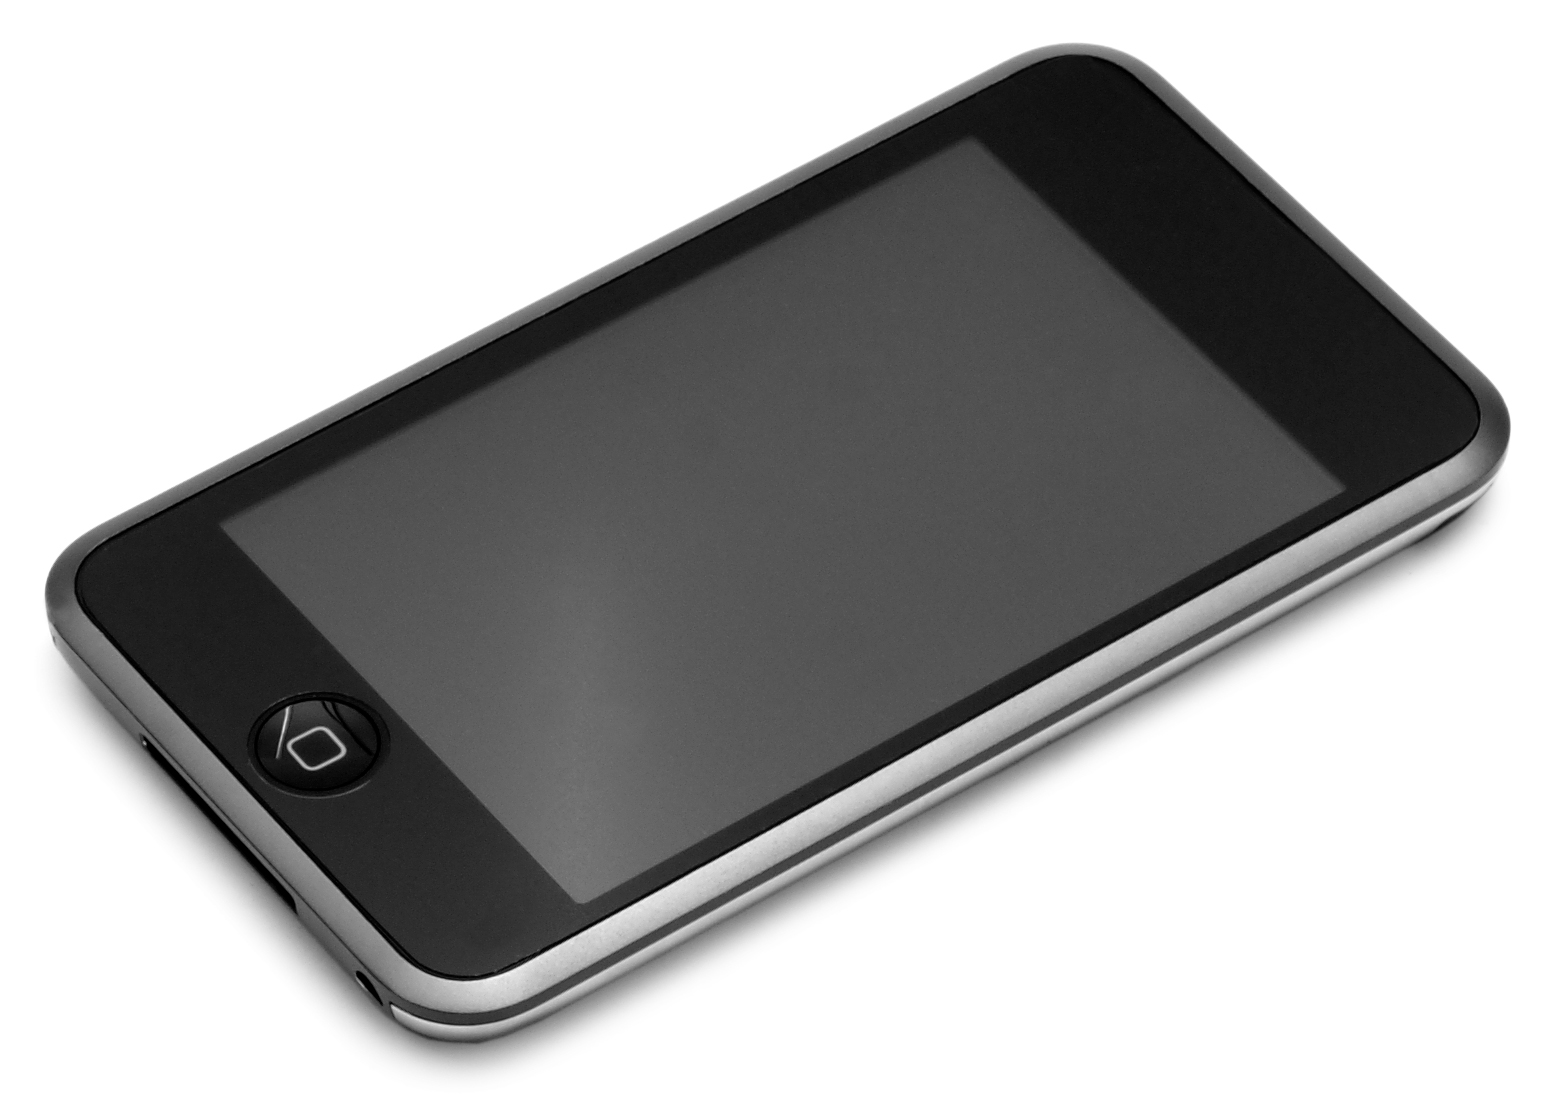 Ipod touch 1st gen Trouble Getting Pregnant